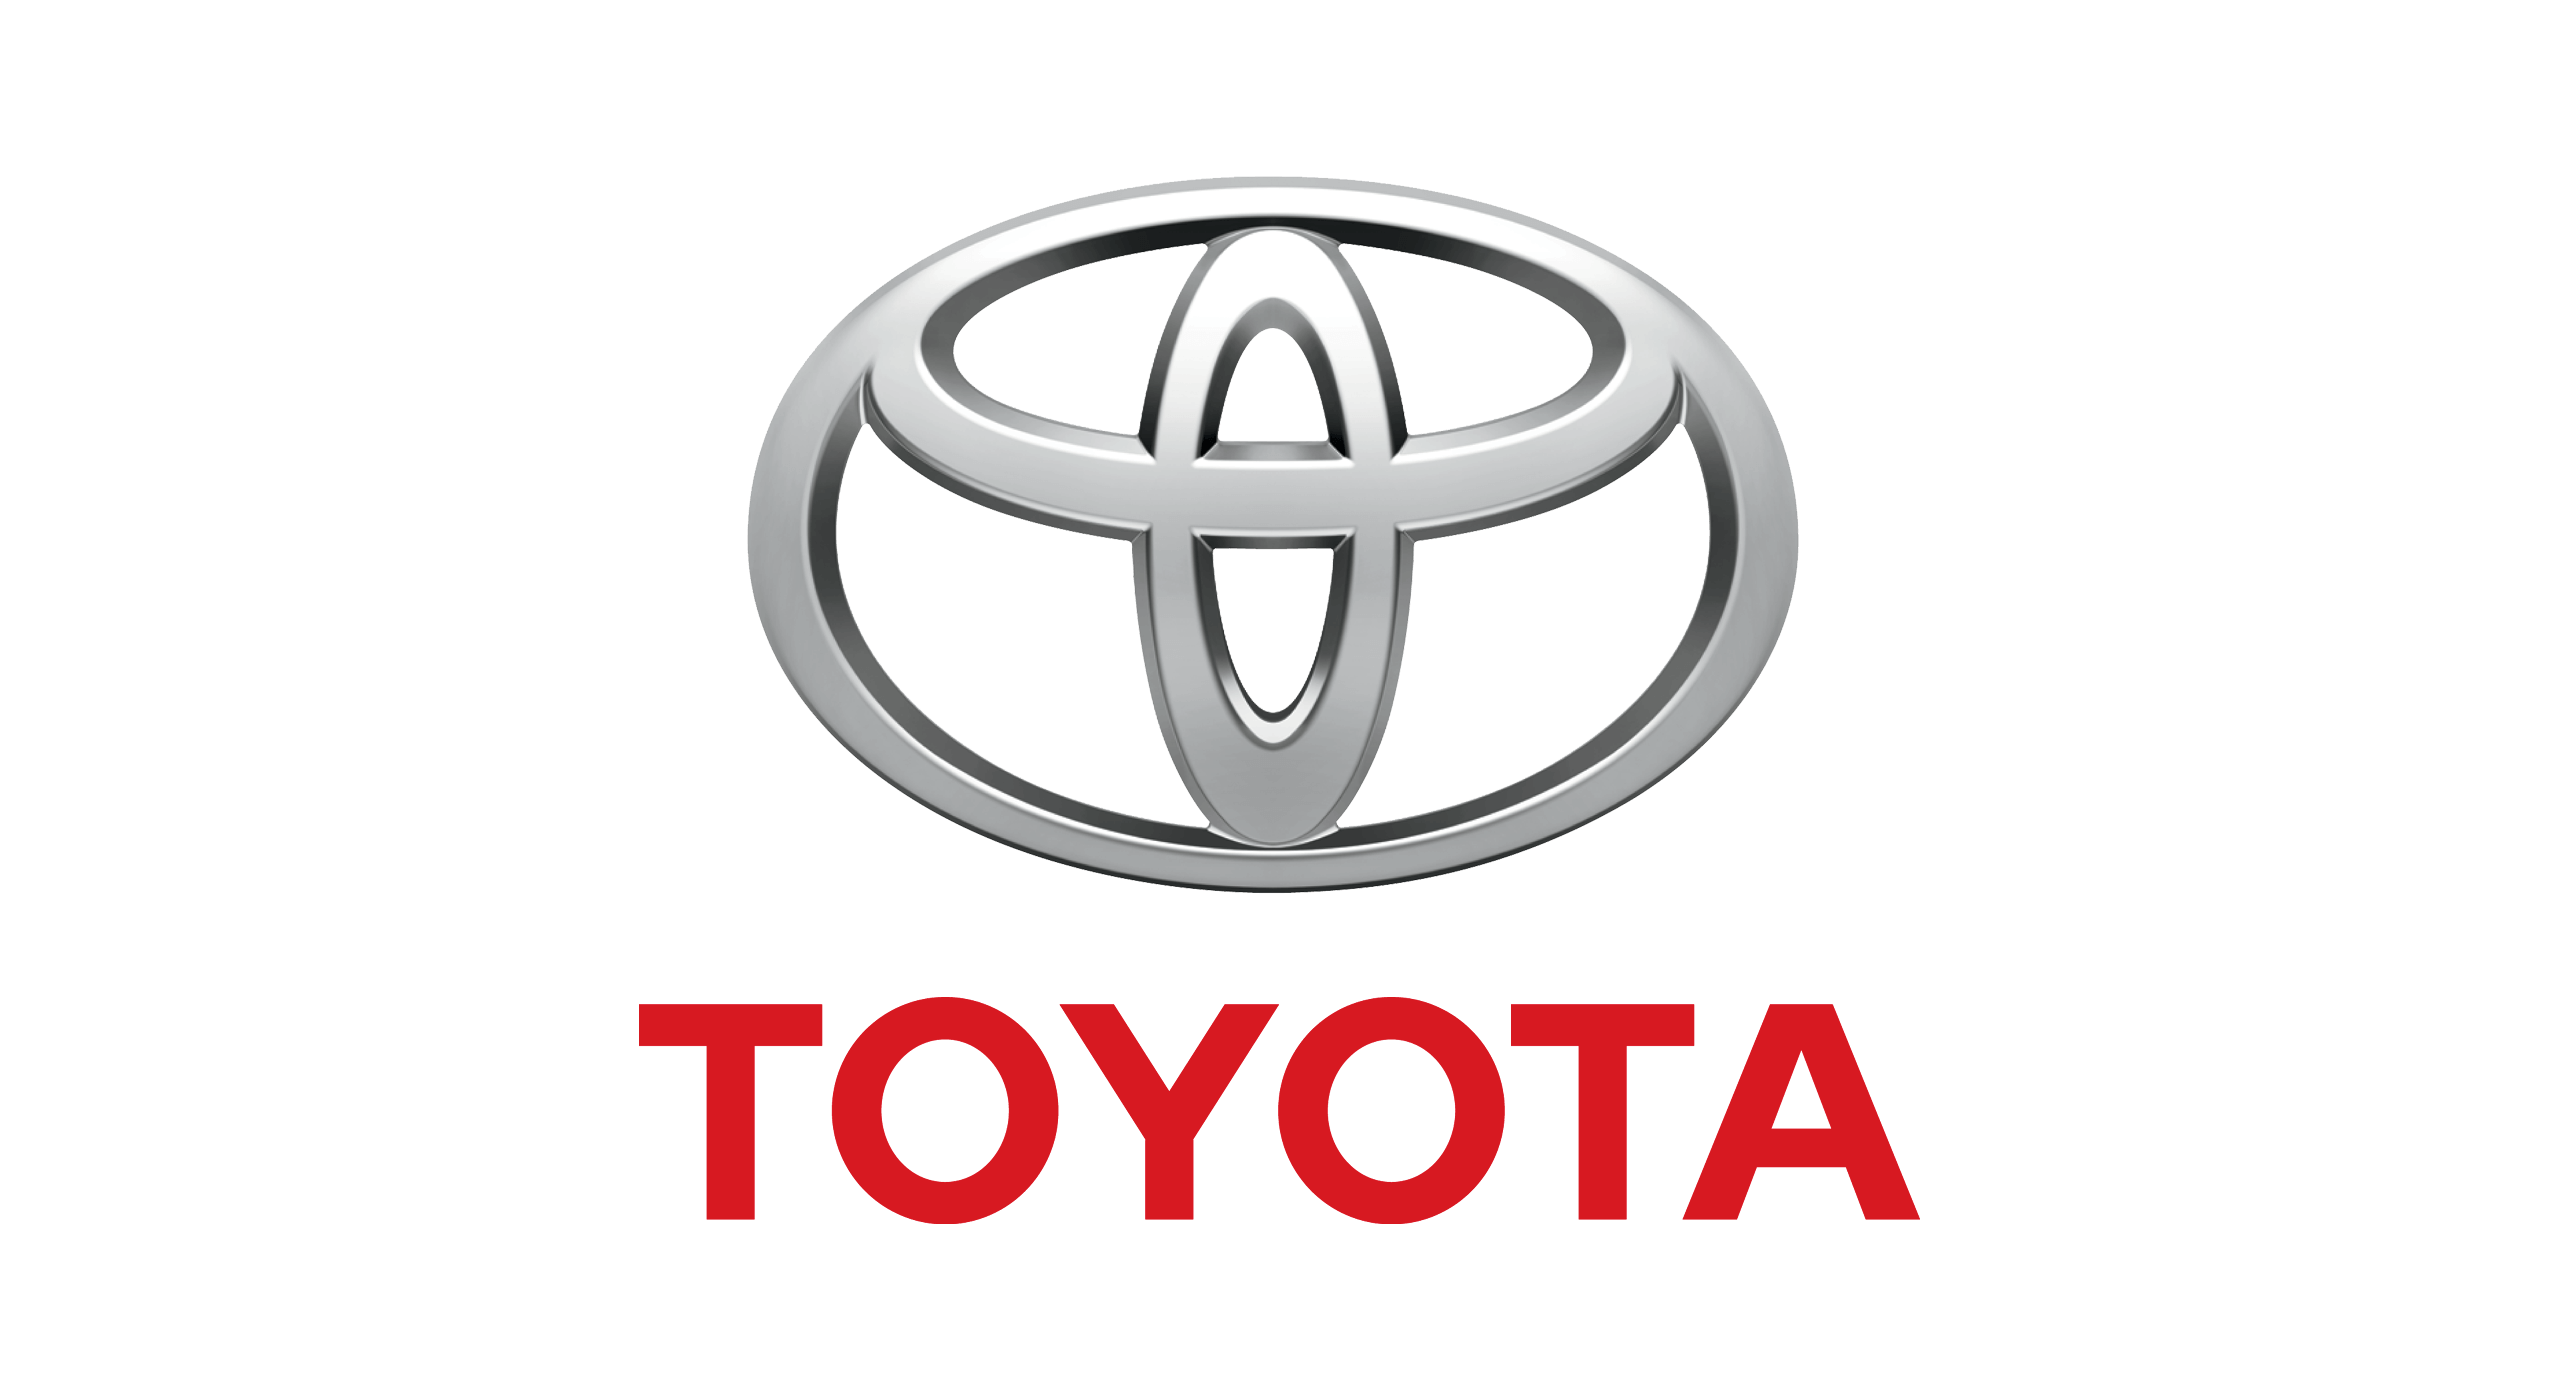 http://rpmautolease.com/wp-content/uploads/2017/08/Toyota-logo-1989-2560x1440.png